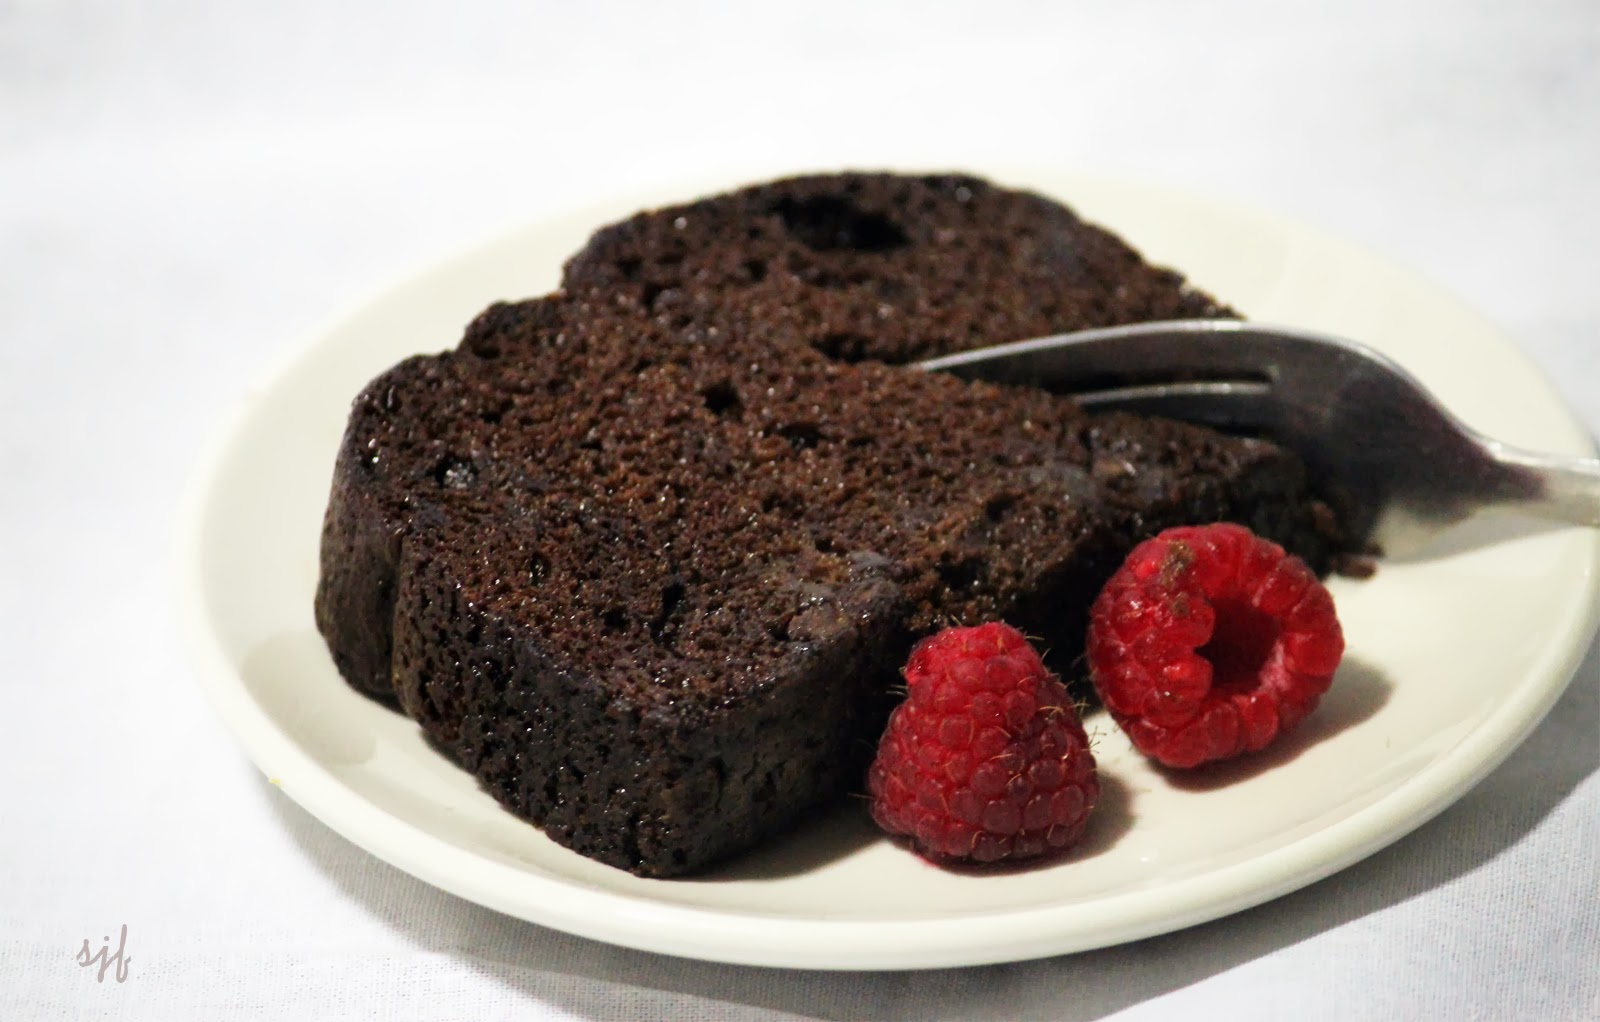 Dietitians Online Blog: January 27, National Chocolate Cake Day